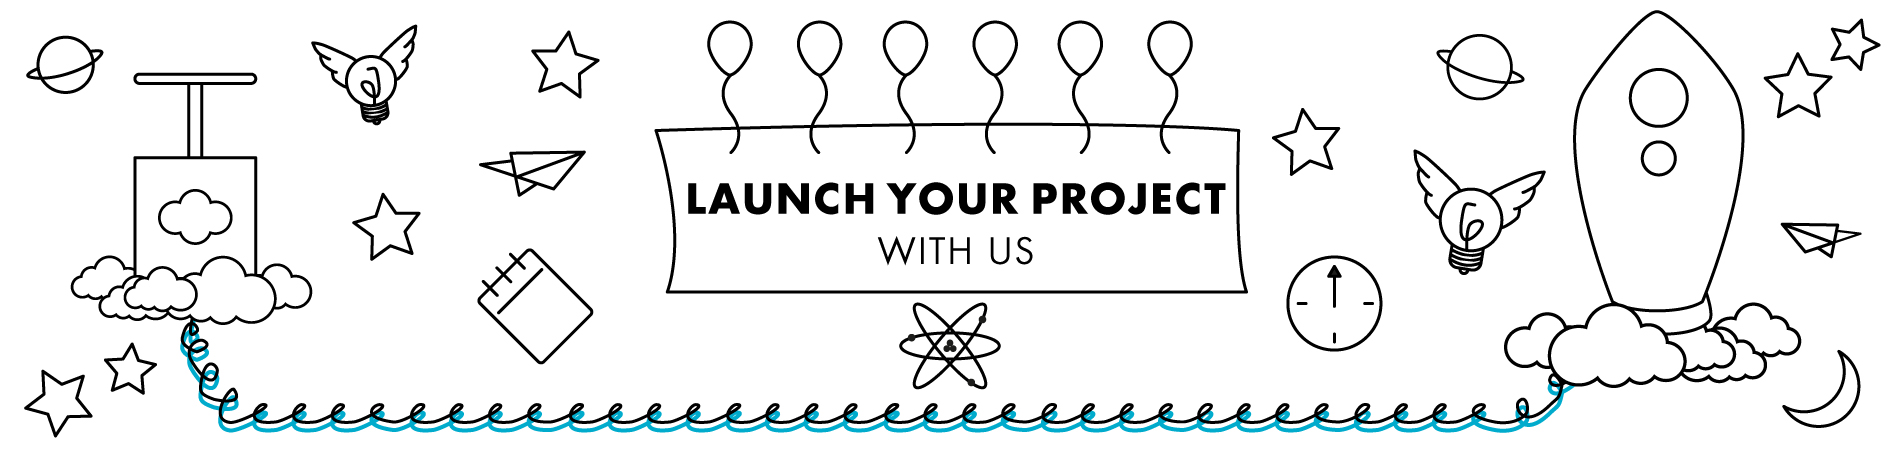 launch-your-project-slide